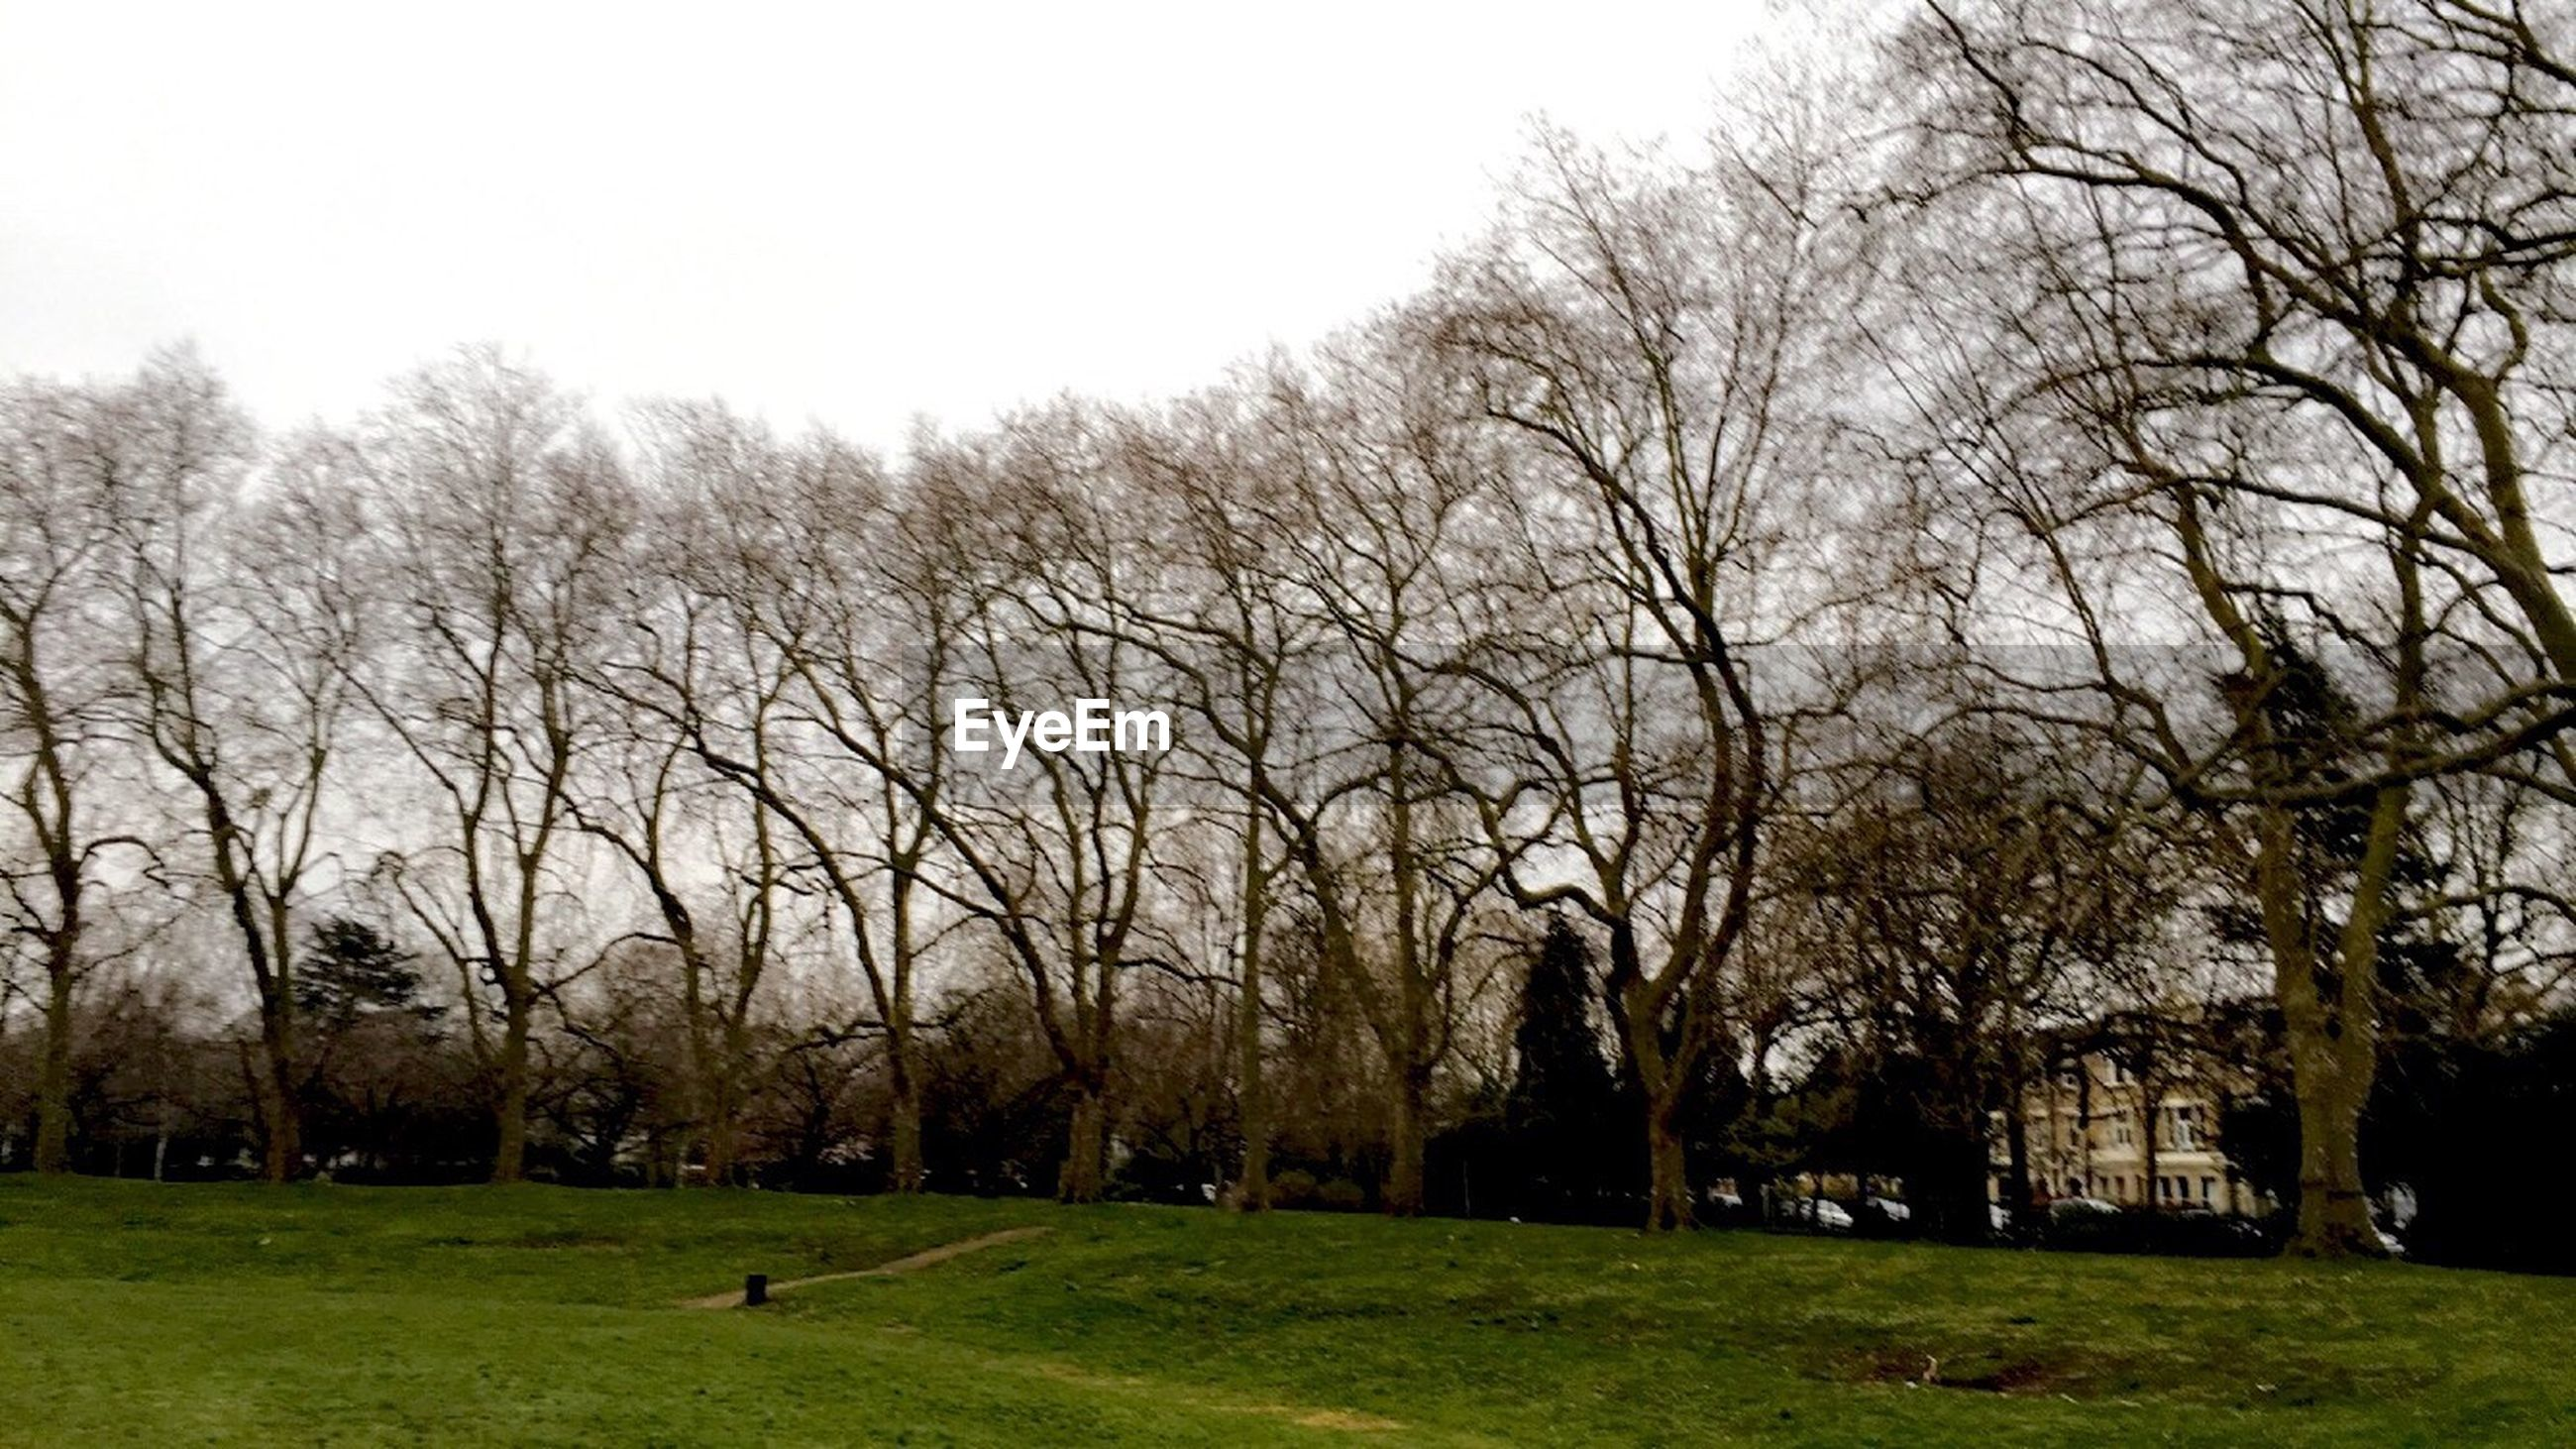 grass, tree, bare tree, field, architecture, built structure, building exterior, grassy, clear sky, park - man made space, landscape, lawn, green color, nature, tranquility, branch, sky, growth, park